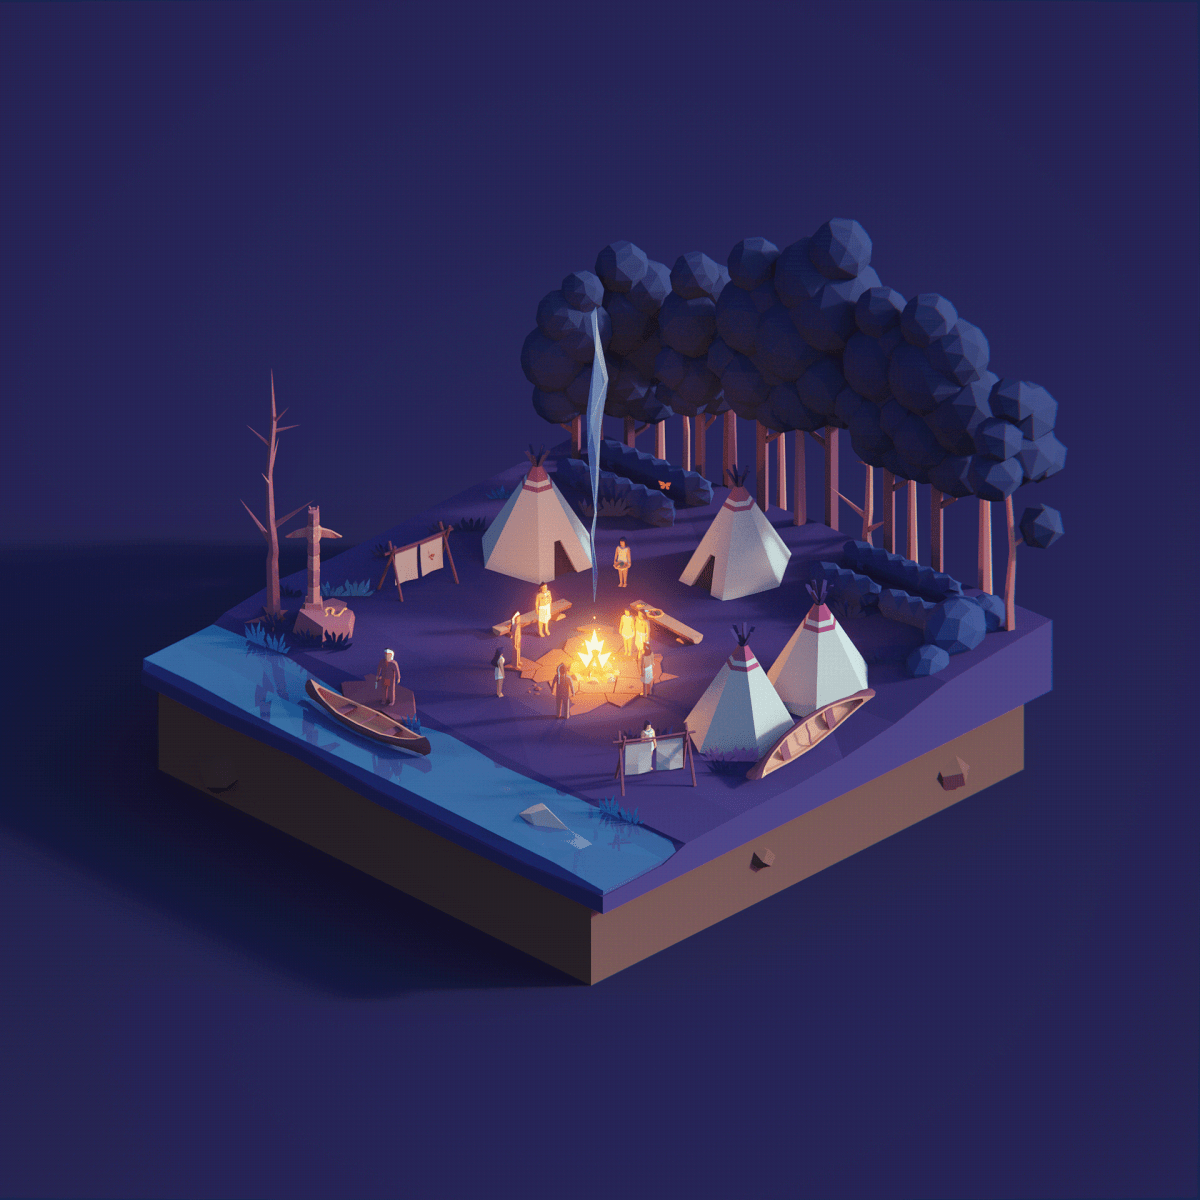 low-poly-world-moss-and-fog-1